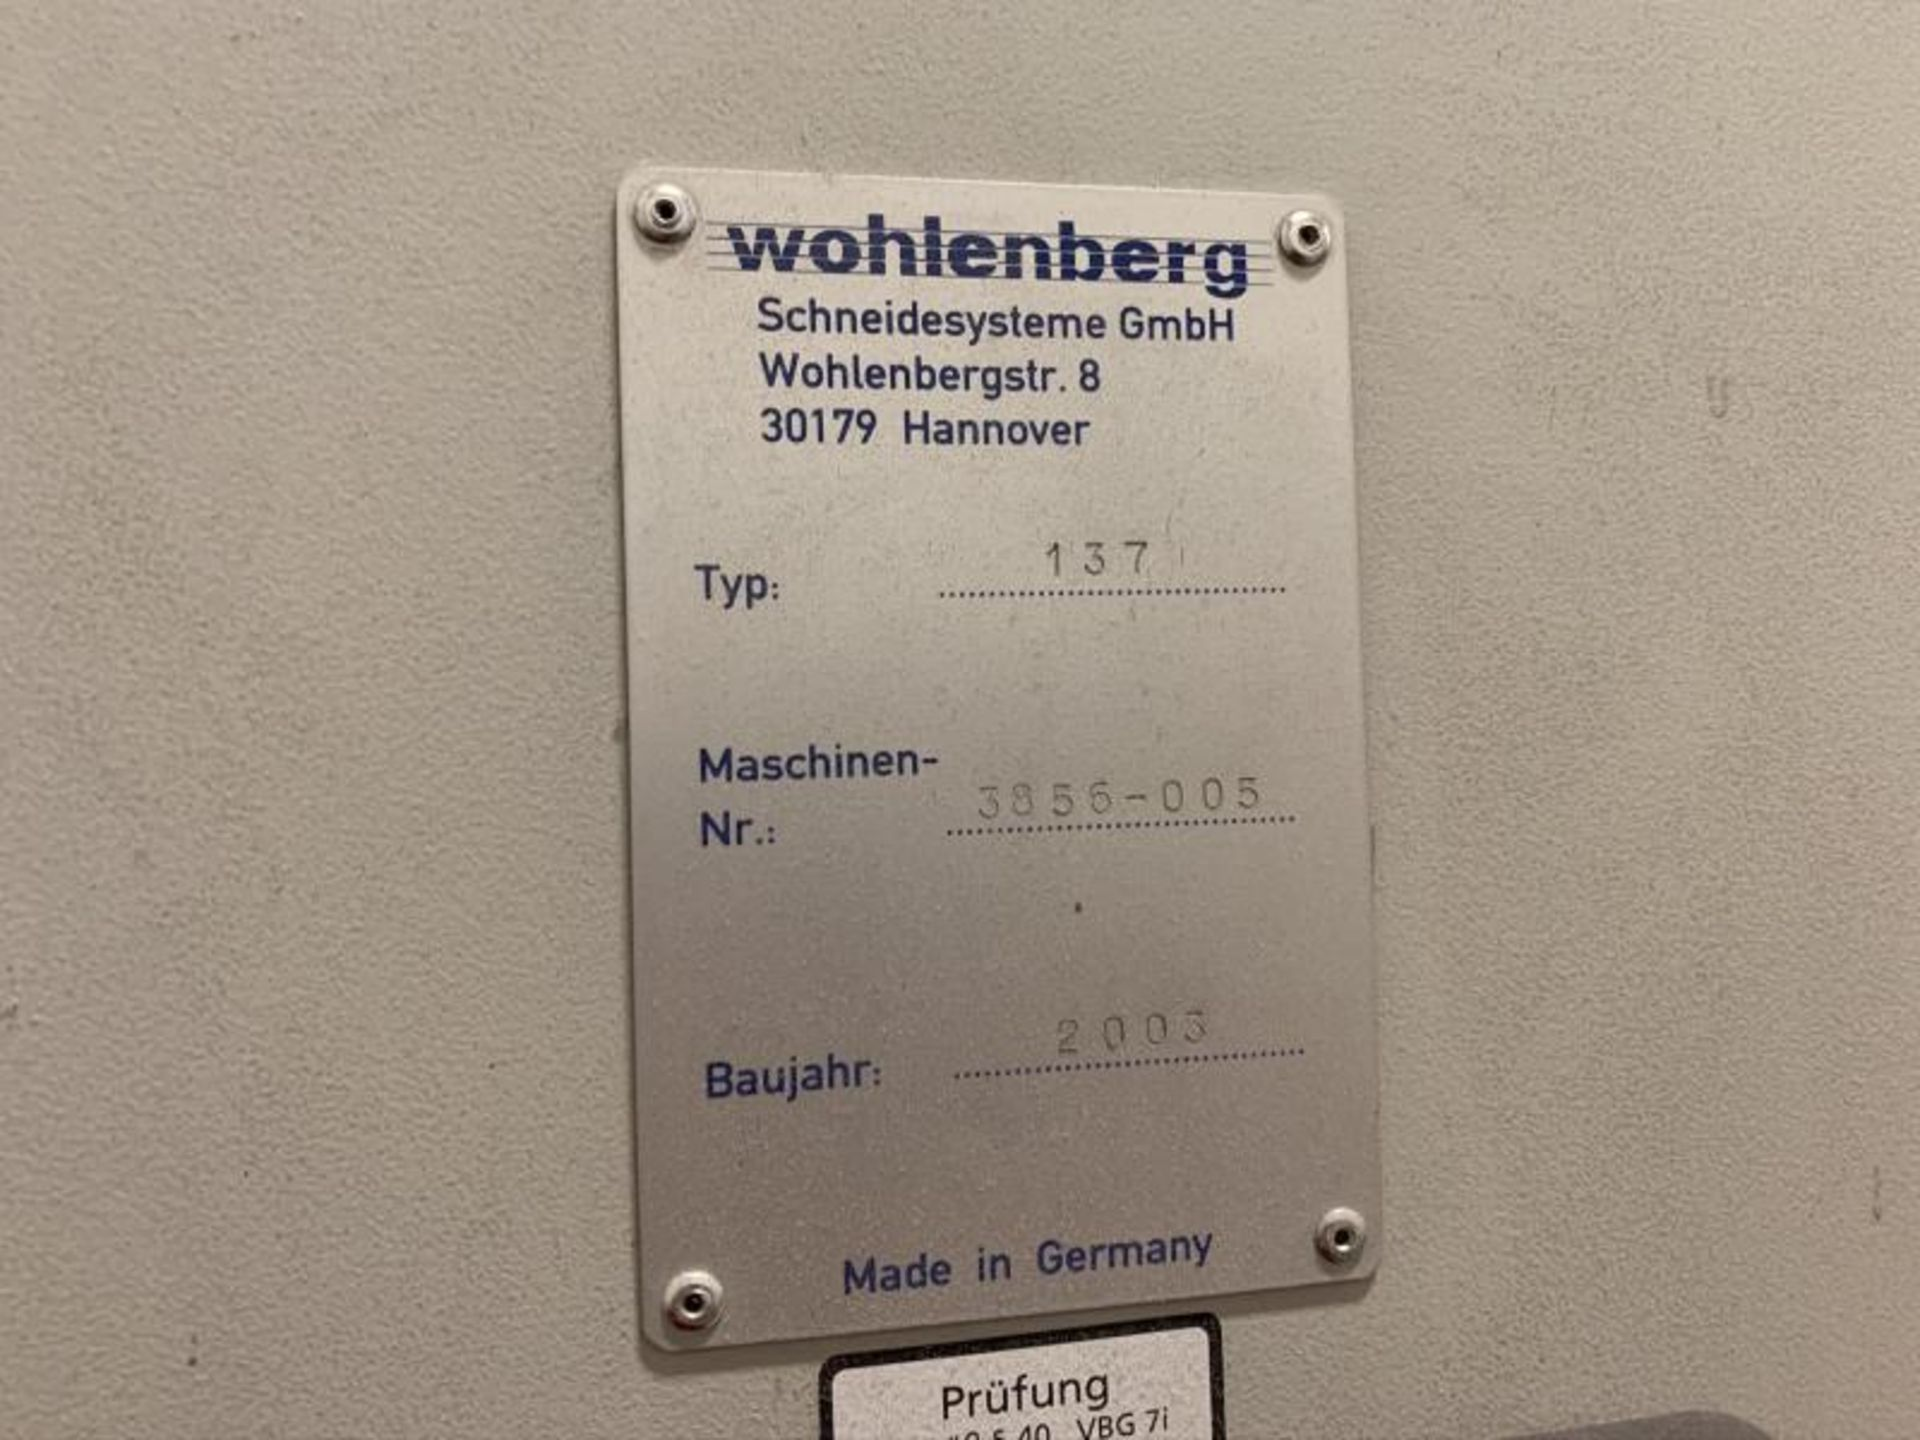 Lot 3 - Paper Cutter by Wohlenberg, Model: 137, Made 2013, 3 Spare Blades, SN: 211.926